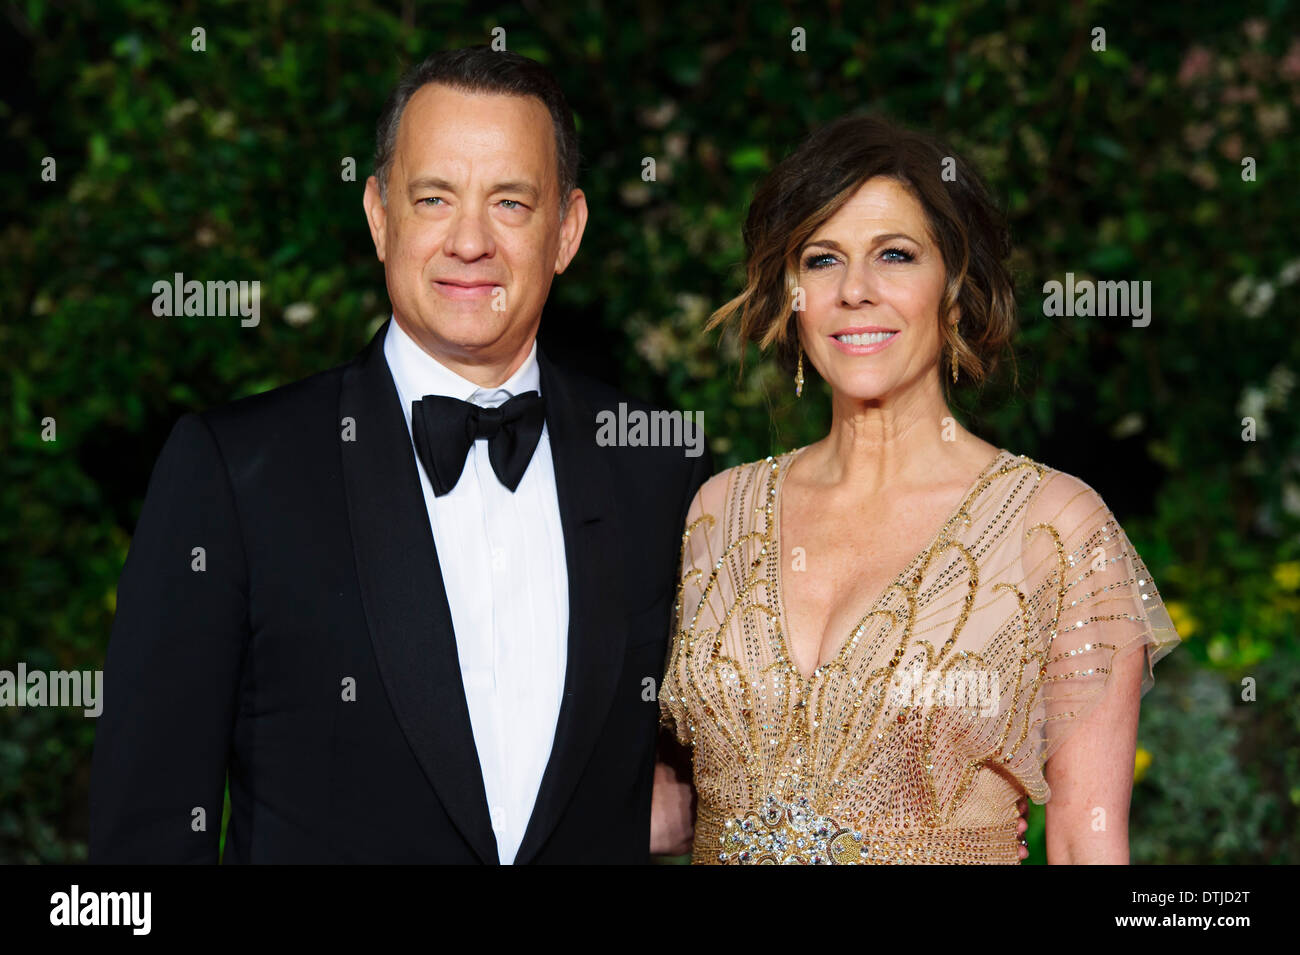 Tom Hanks and Rita Wilson arrive for the British Academy Film Awards 2014 After Party at the Grosvenor Hotel. - Stock Image